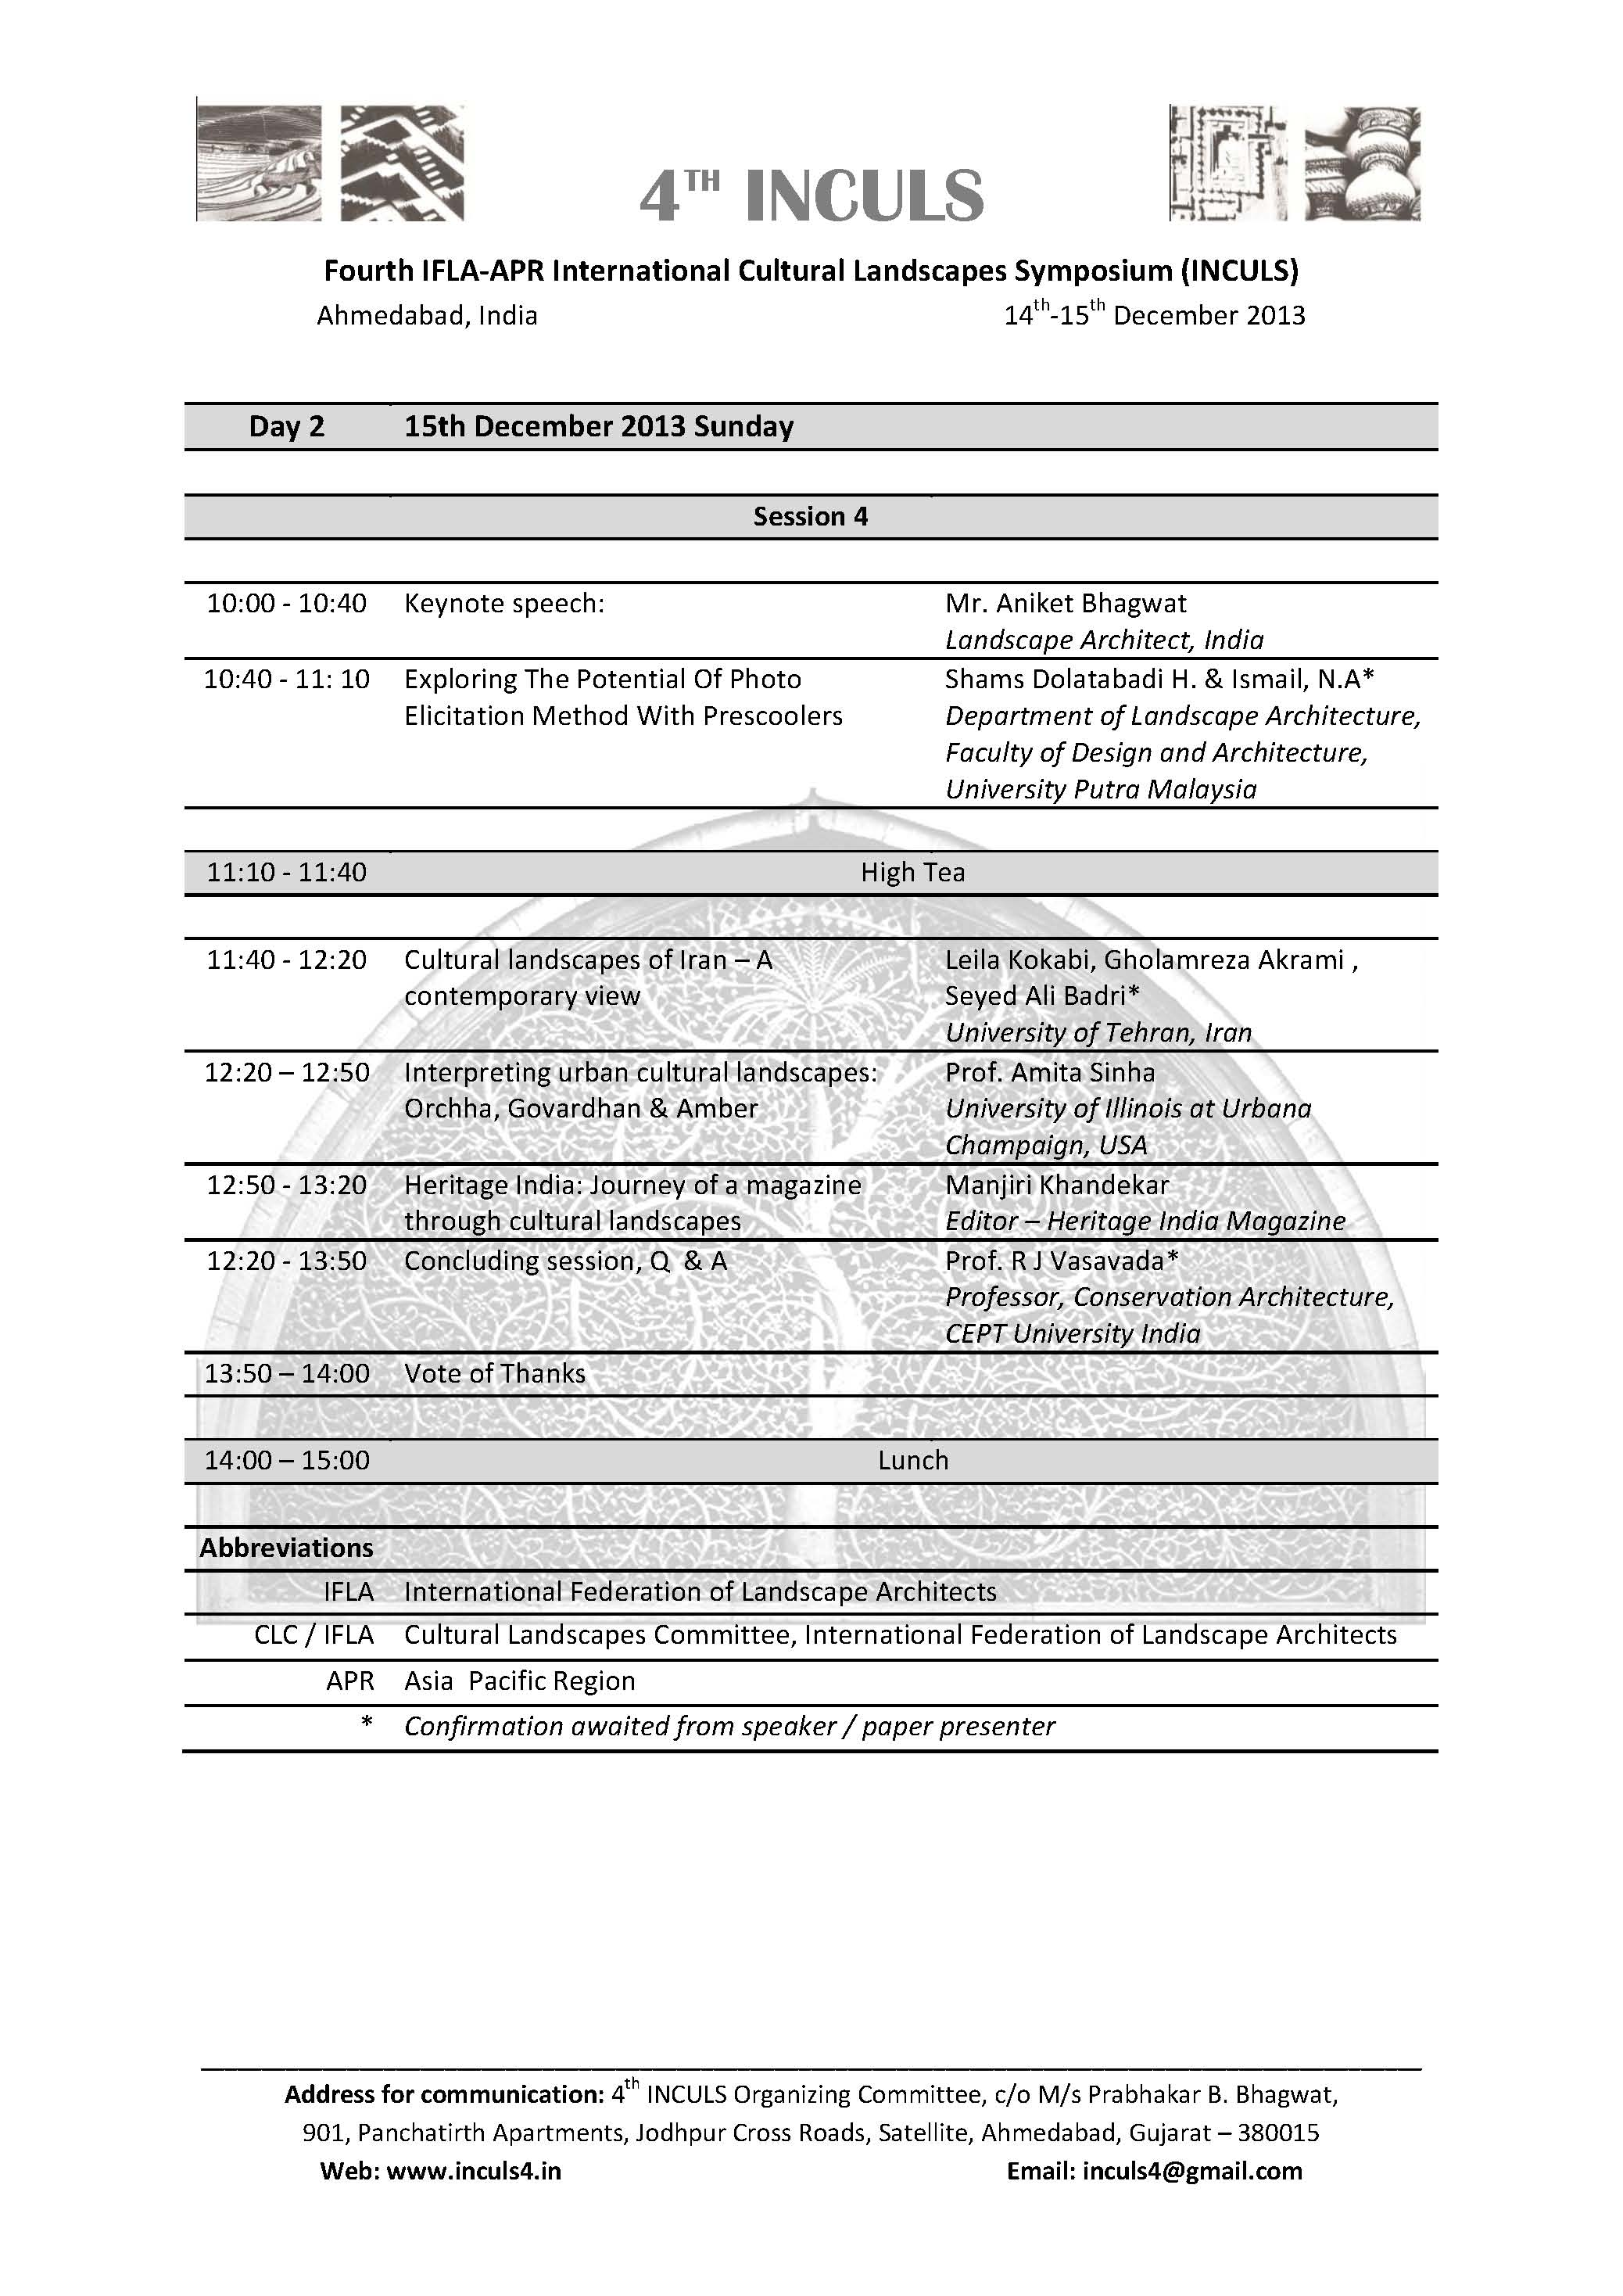 4 INCULS Schedule R02_Page_3